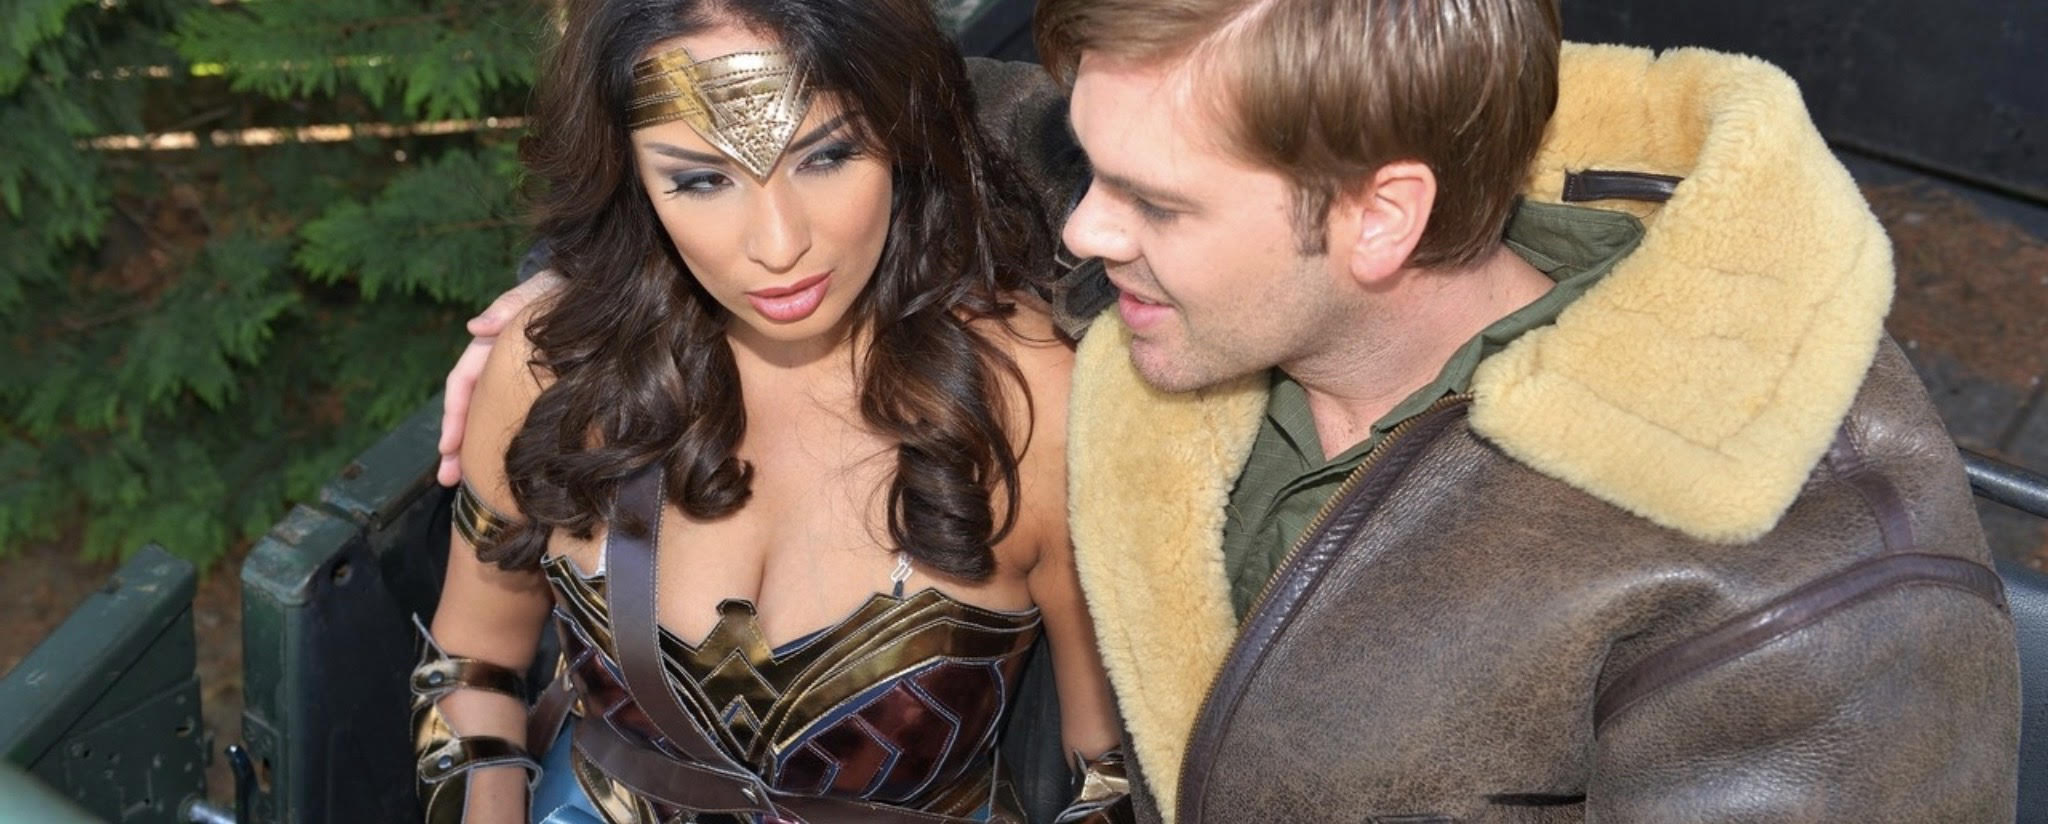 "alt=""Wonder Woman cosplay porn parody"">"